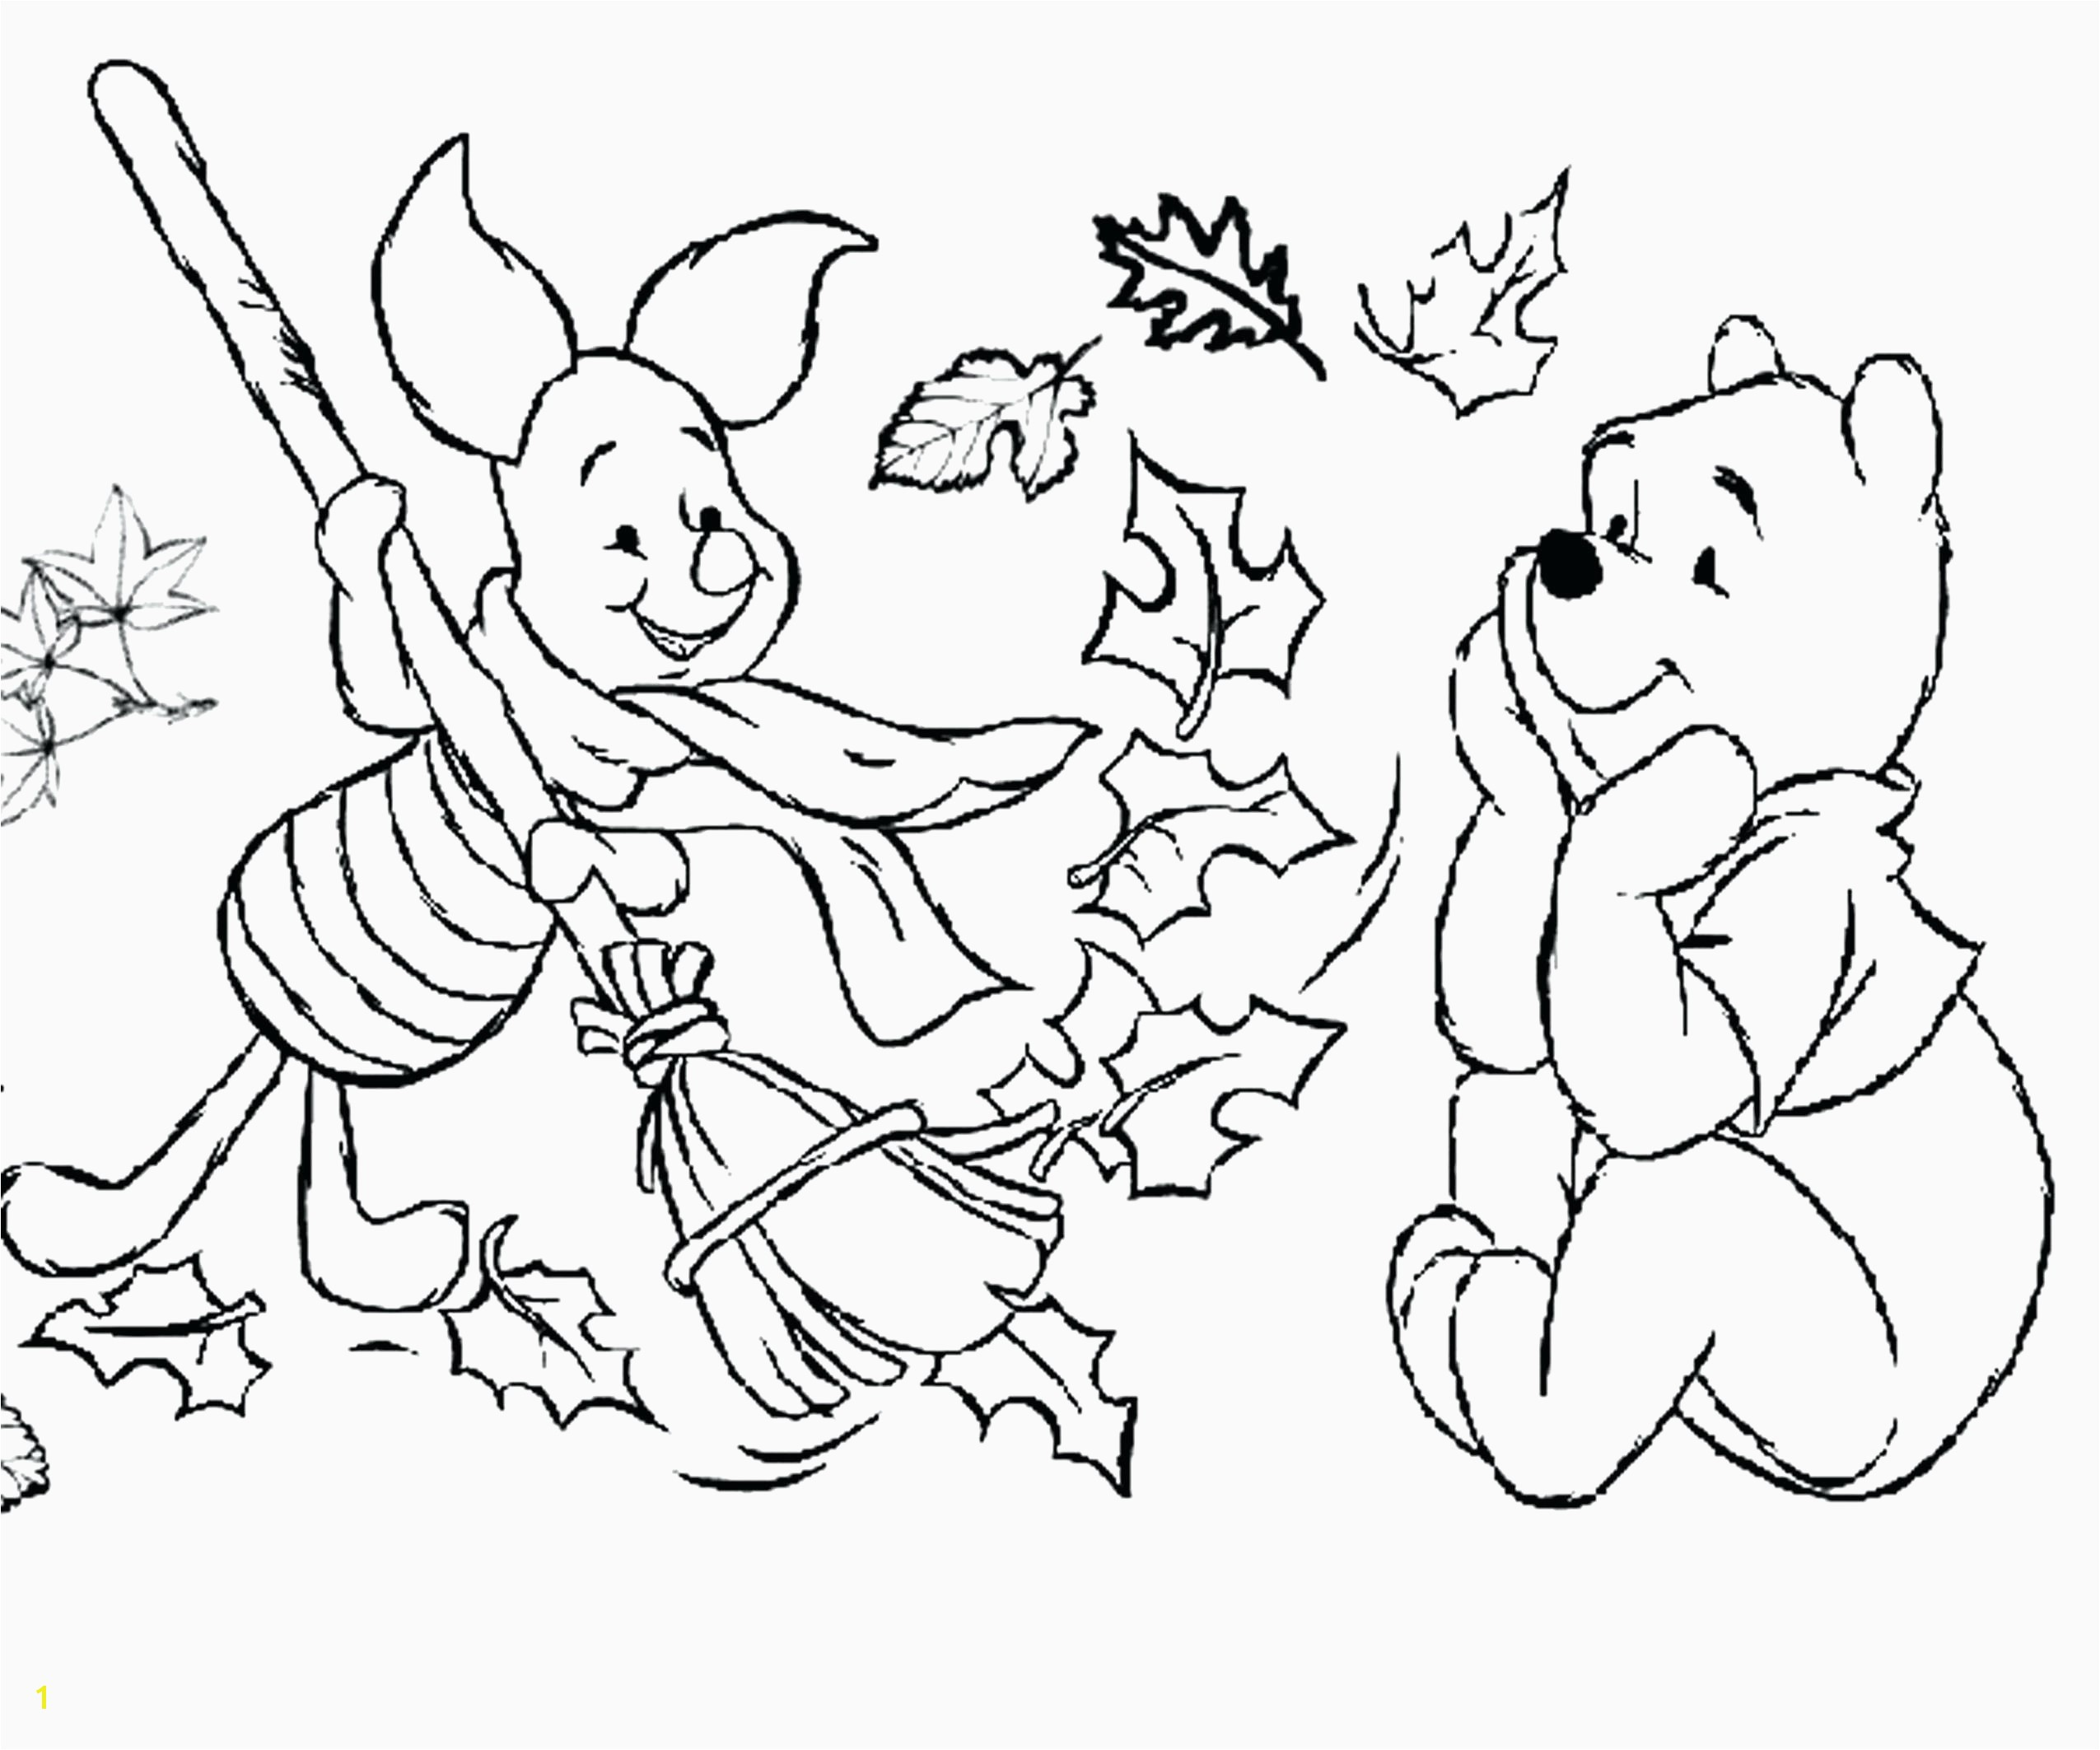 Letter A Coloring Pages Elegant 45 Beautiful Image Coloring Pages for Kids Letter A Coloring